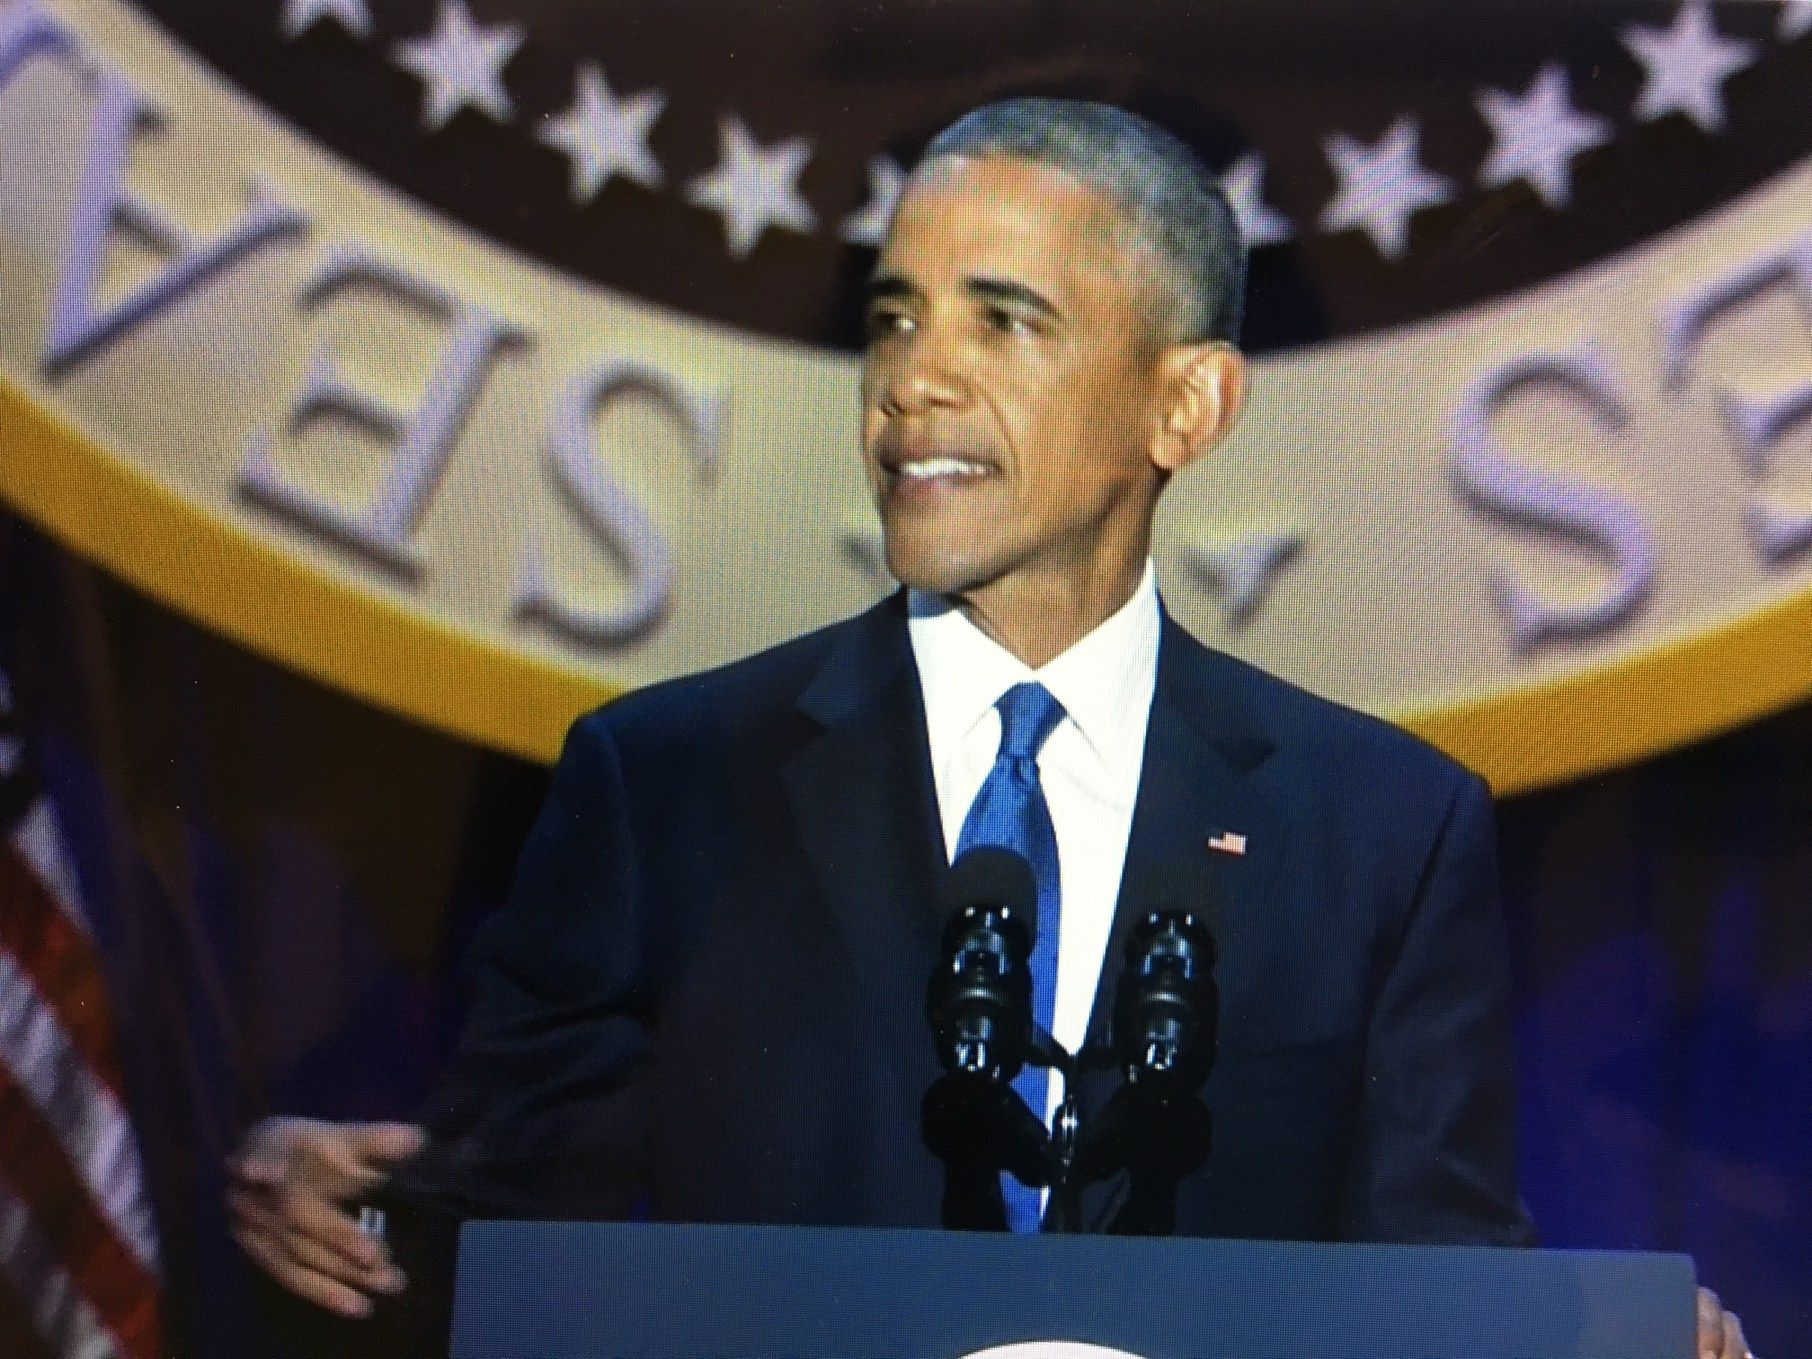 President Obama's Farewell Address Sets His legacy from Chicago to the World | 코리일보 | CoreeILBO